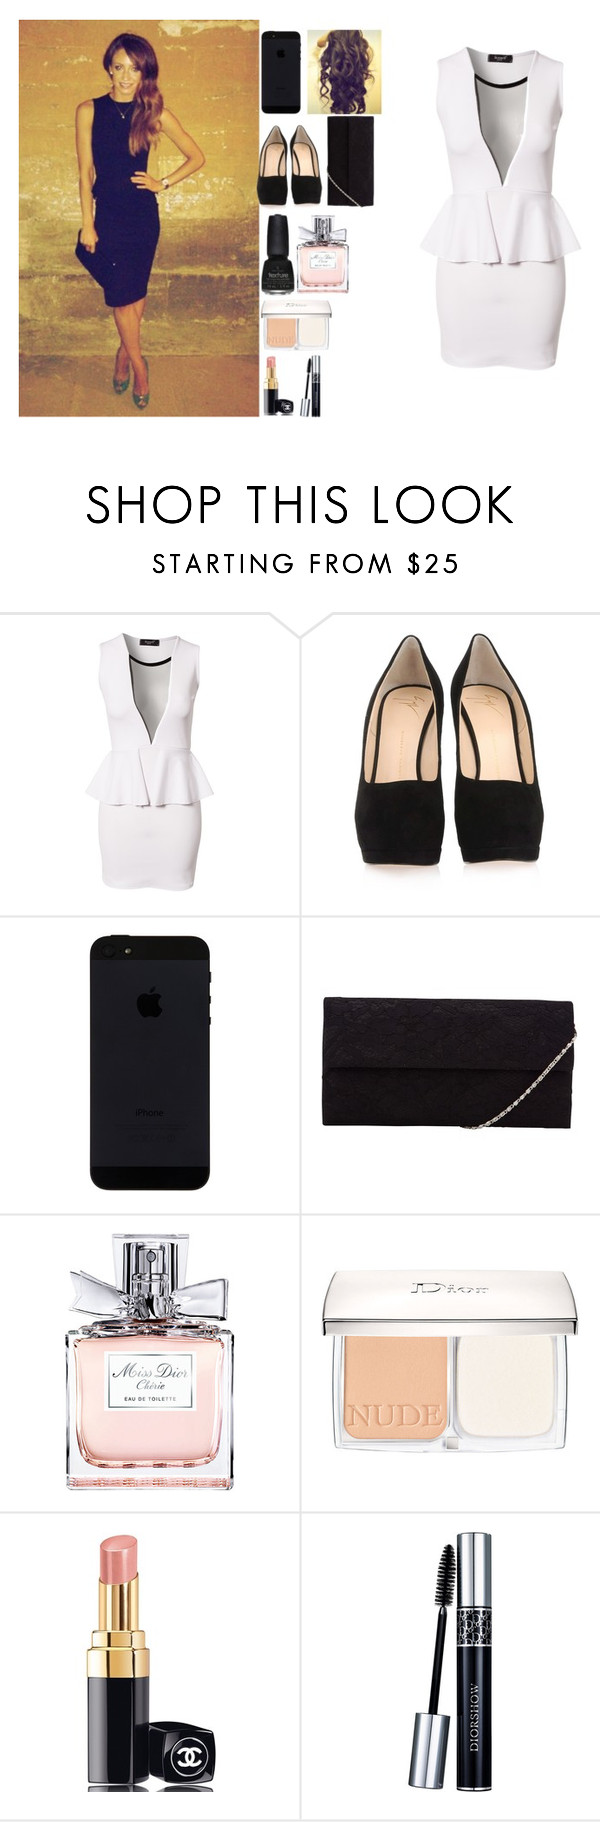 """""""Dinner with Danielle"""" by sarastyles-362 ❤ liked on Polyvore featuring Sisters Point, Nemesis, Giuseppe Zanotti, John Lewis, China Glaze, Christian Dior and Chanel"""